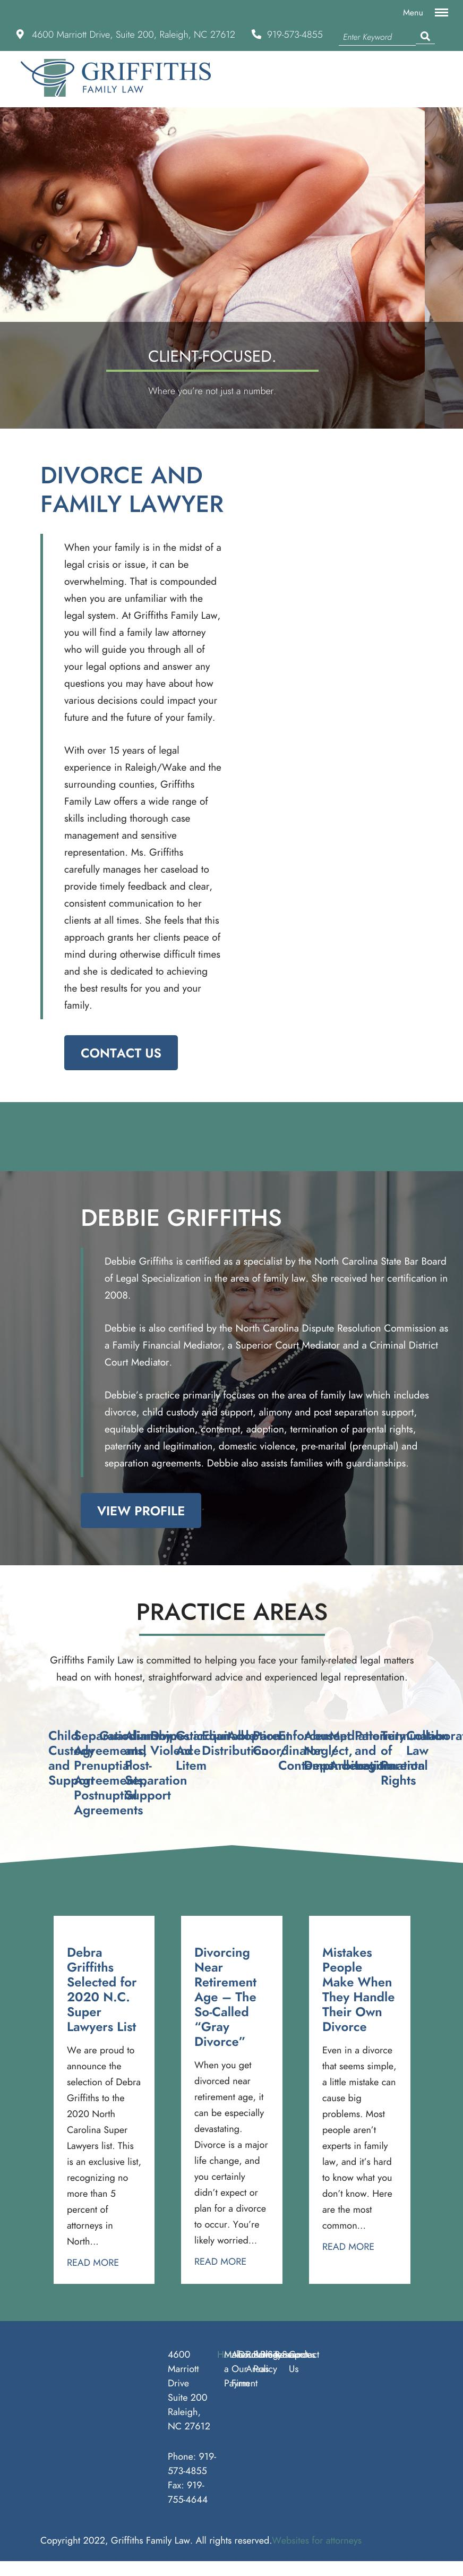 Griffiths Family Law - Raleigh NC Lawyers